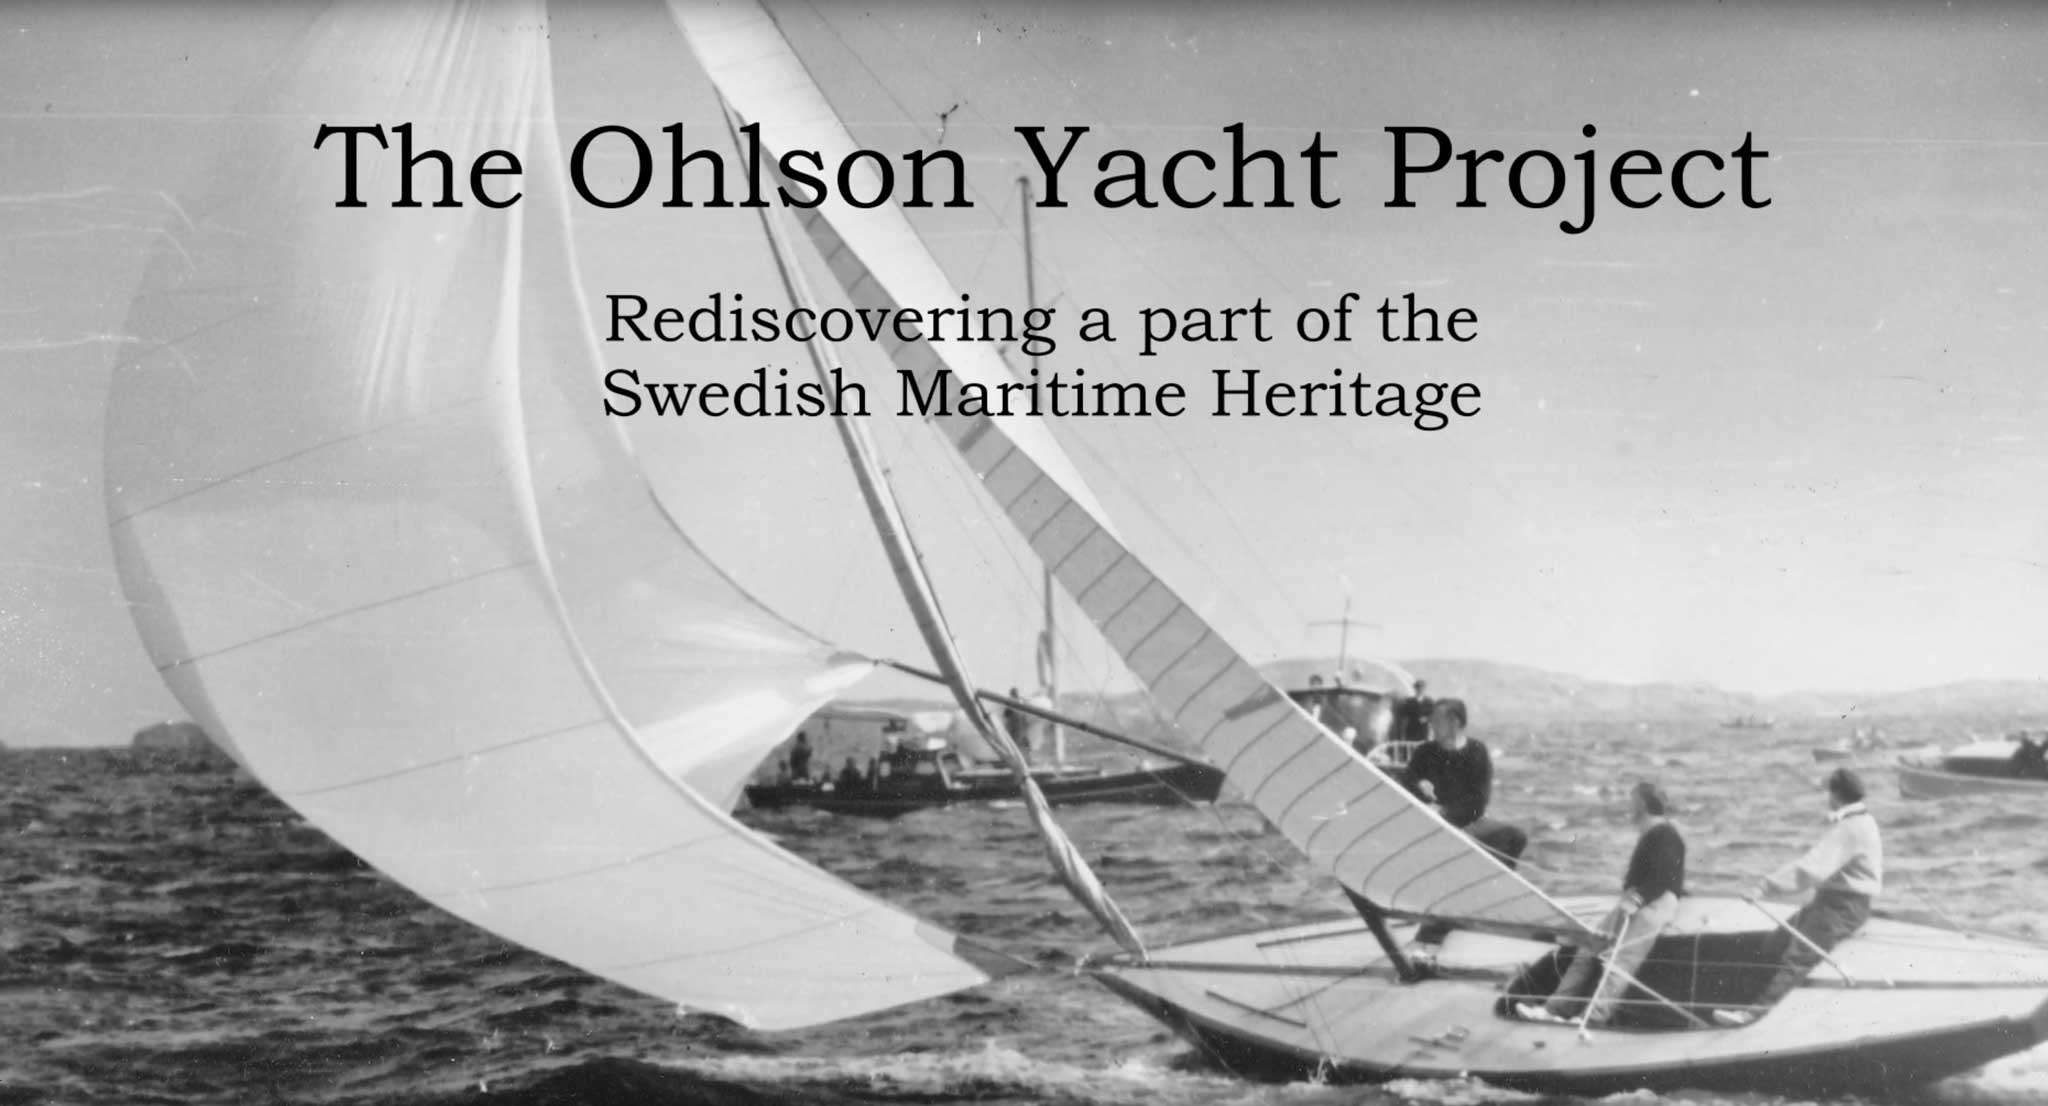 The Ohlson Yacht Project